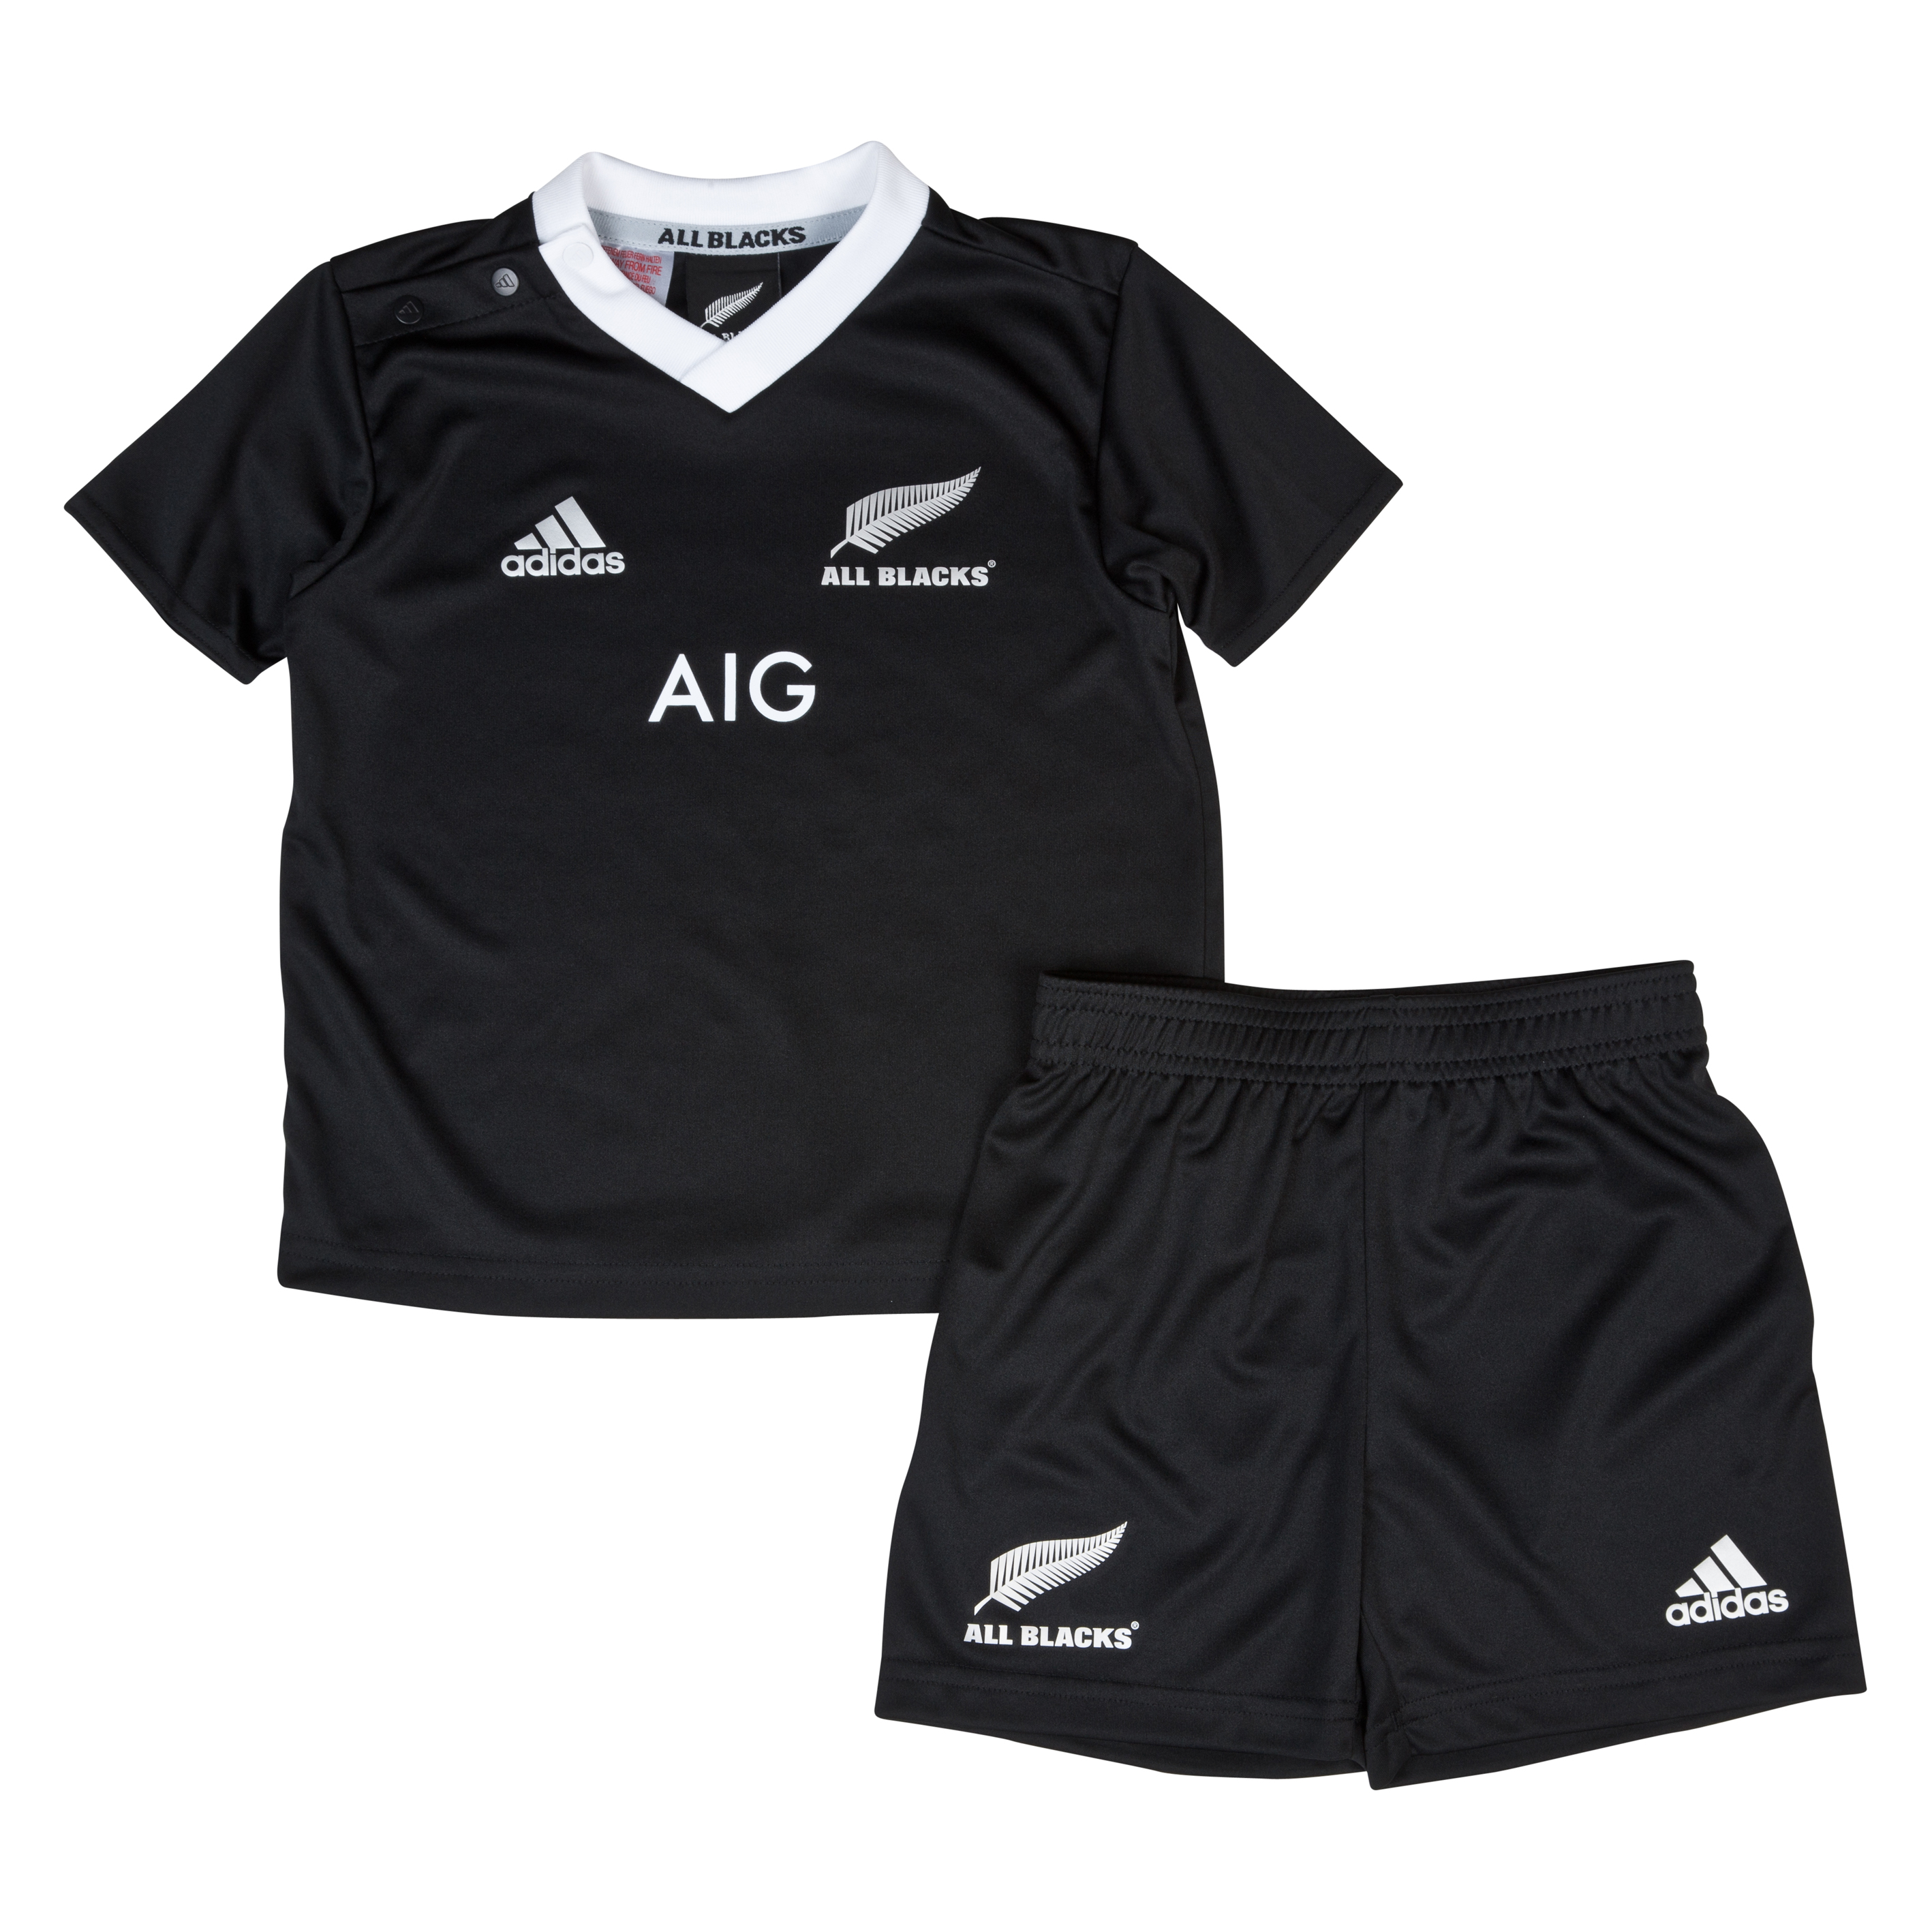 All Blacks Home Babykit 2013/14 - Black/White